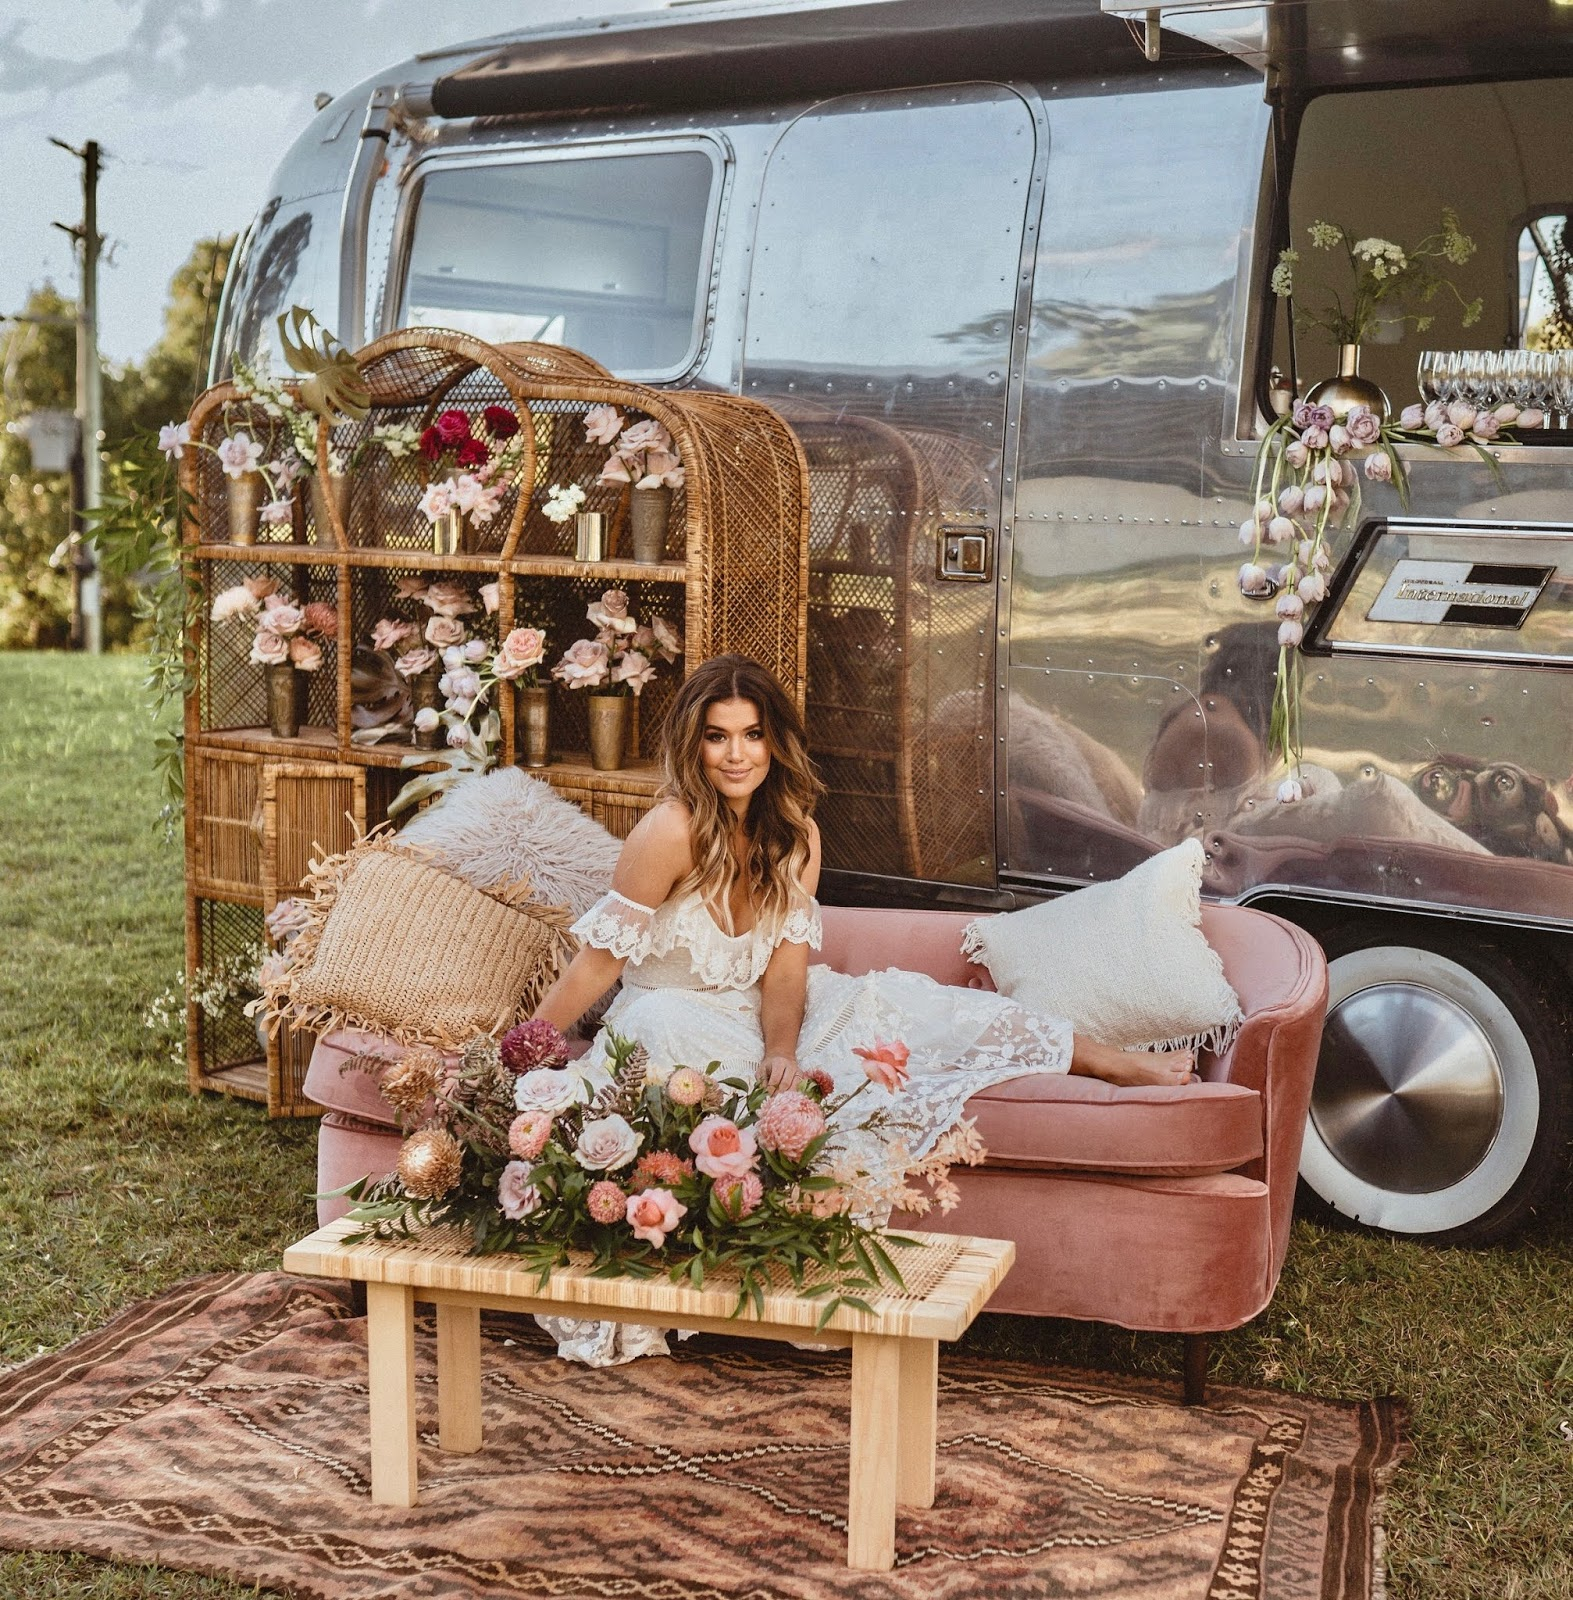 nathan lapham photography byron bay  wedding hire furniture decor boho weddings styling